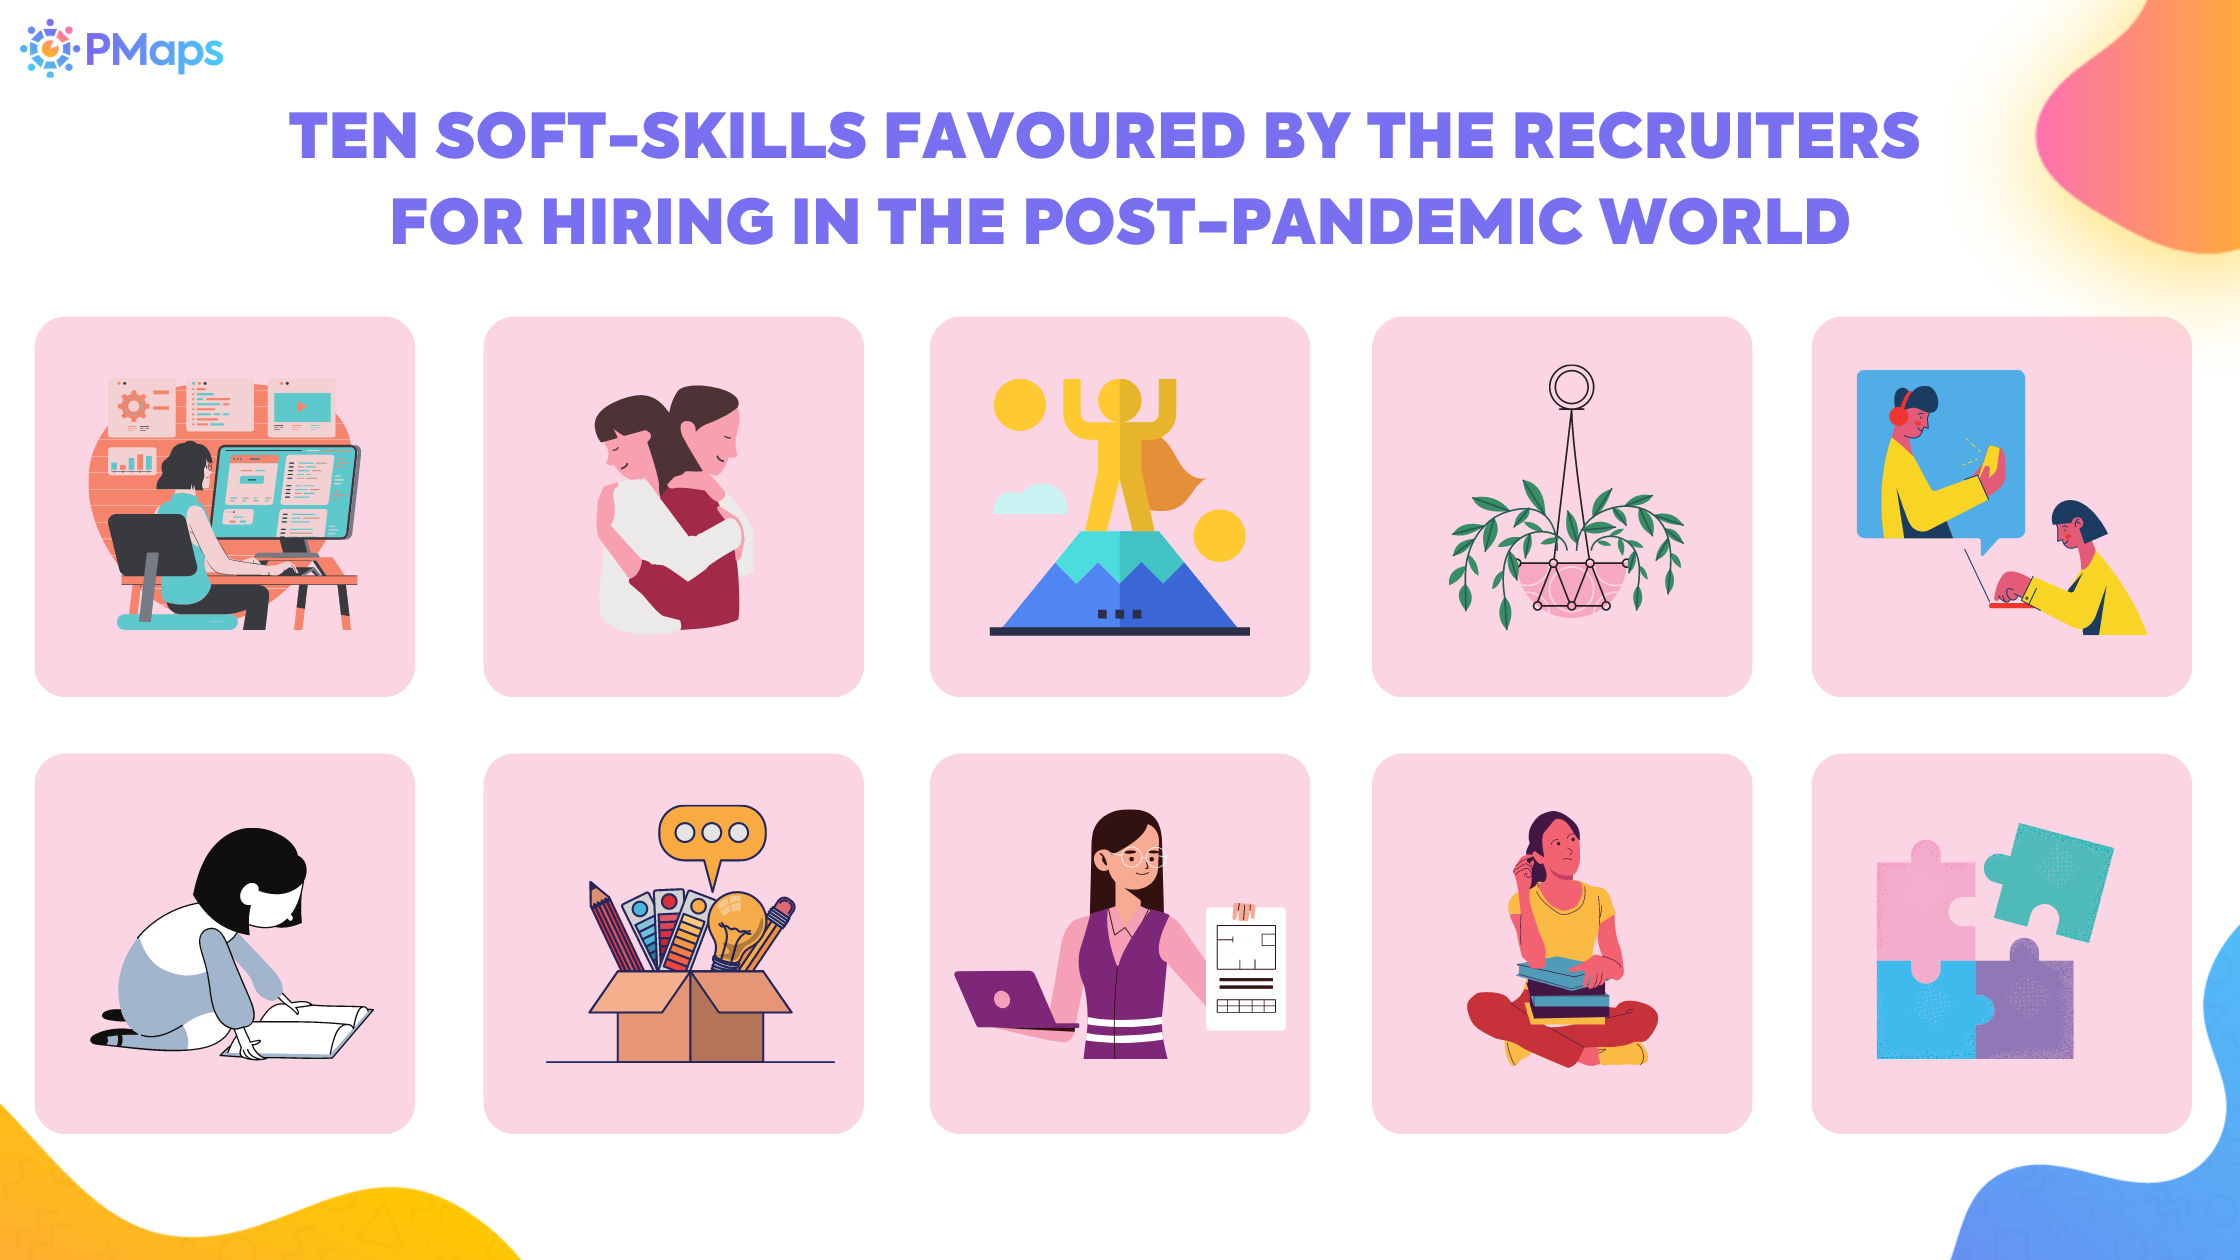 Ten Soft-Skills favoured by the Recruiters for hiring in the Post-Pandemic World